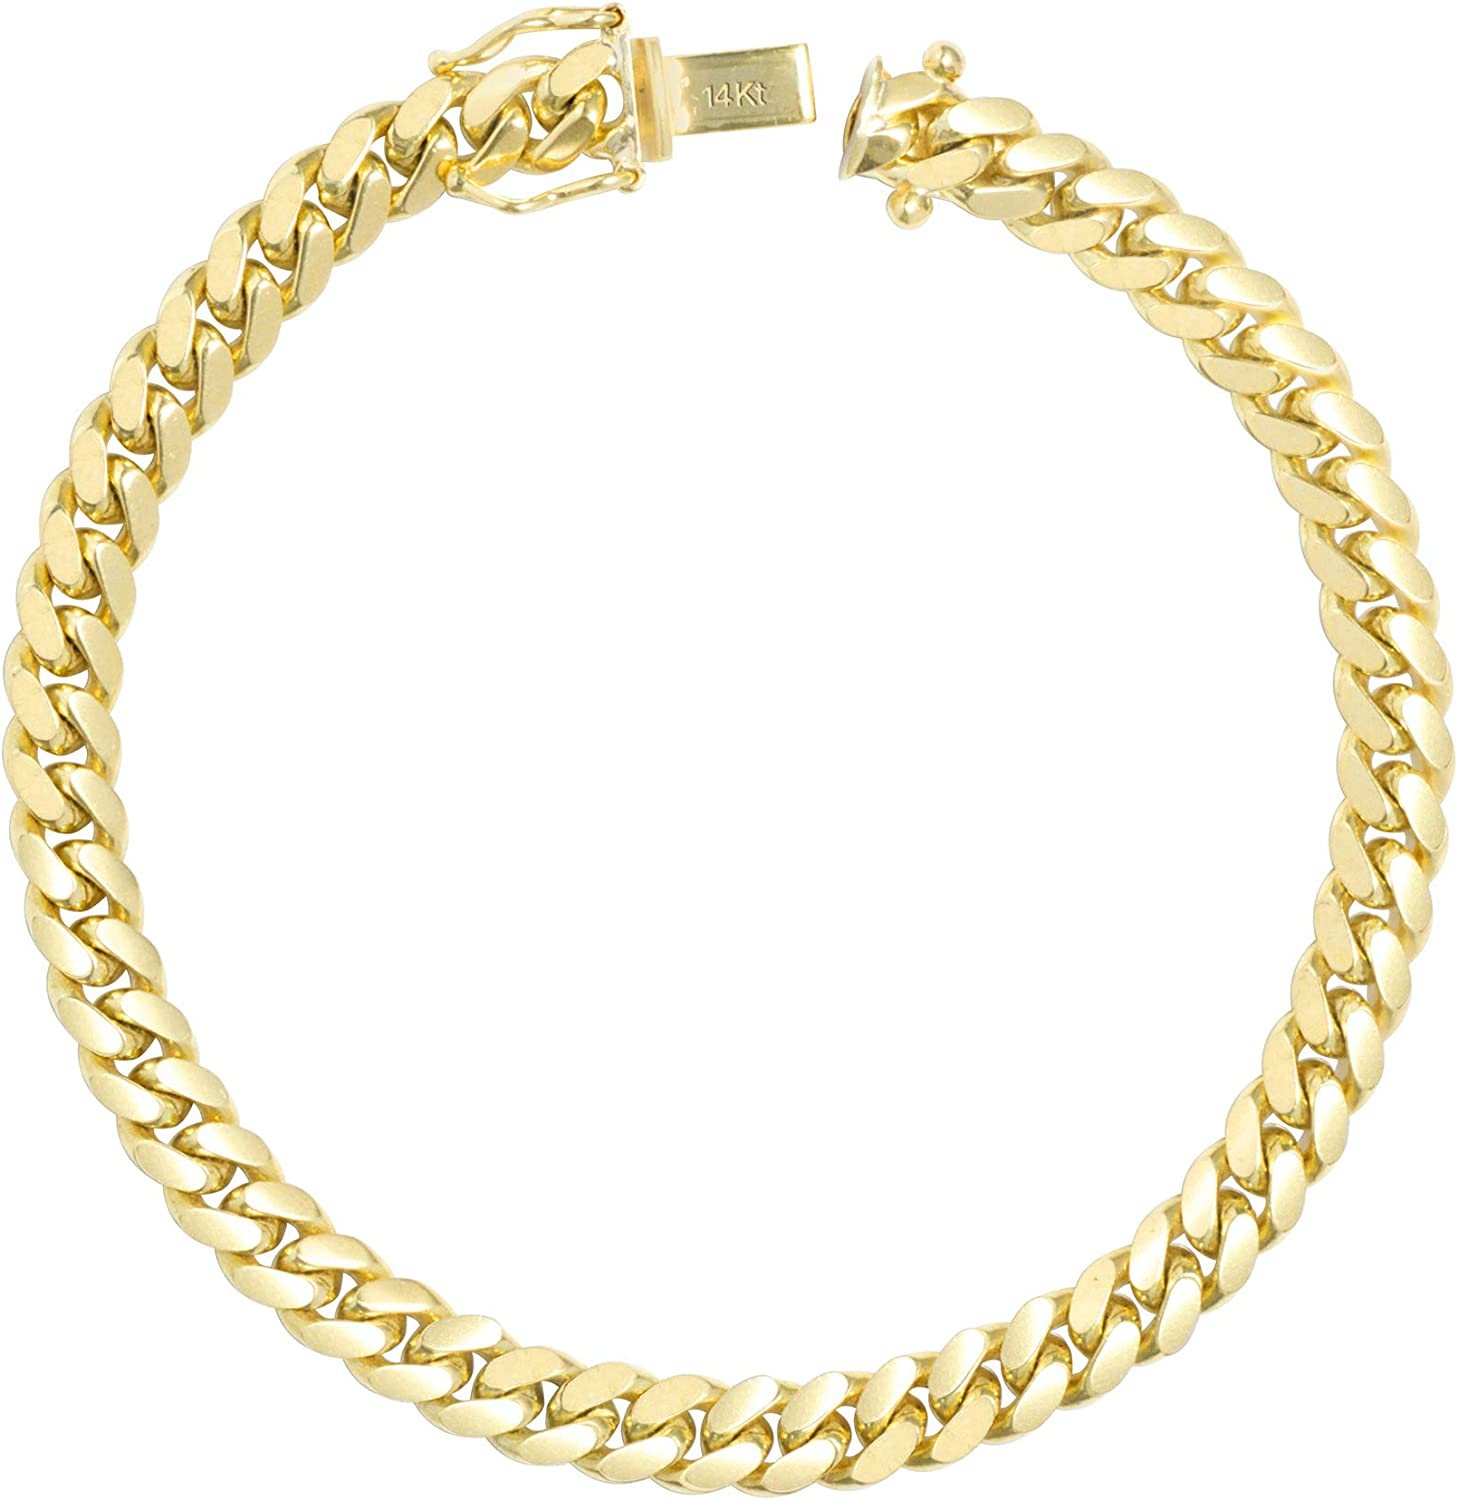 Nuragold 21k Yellow Gold 21mm Solid Miami Cuban Link Chain Bracelet, Mens  Jewelry Box Clasp 21